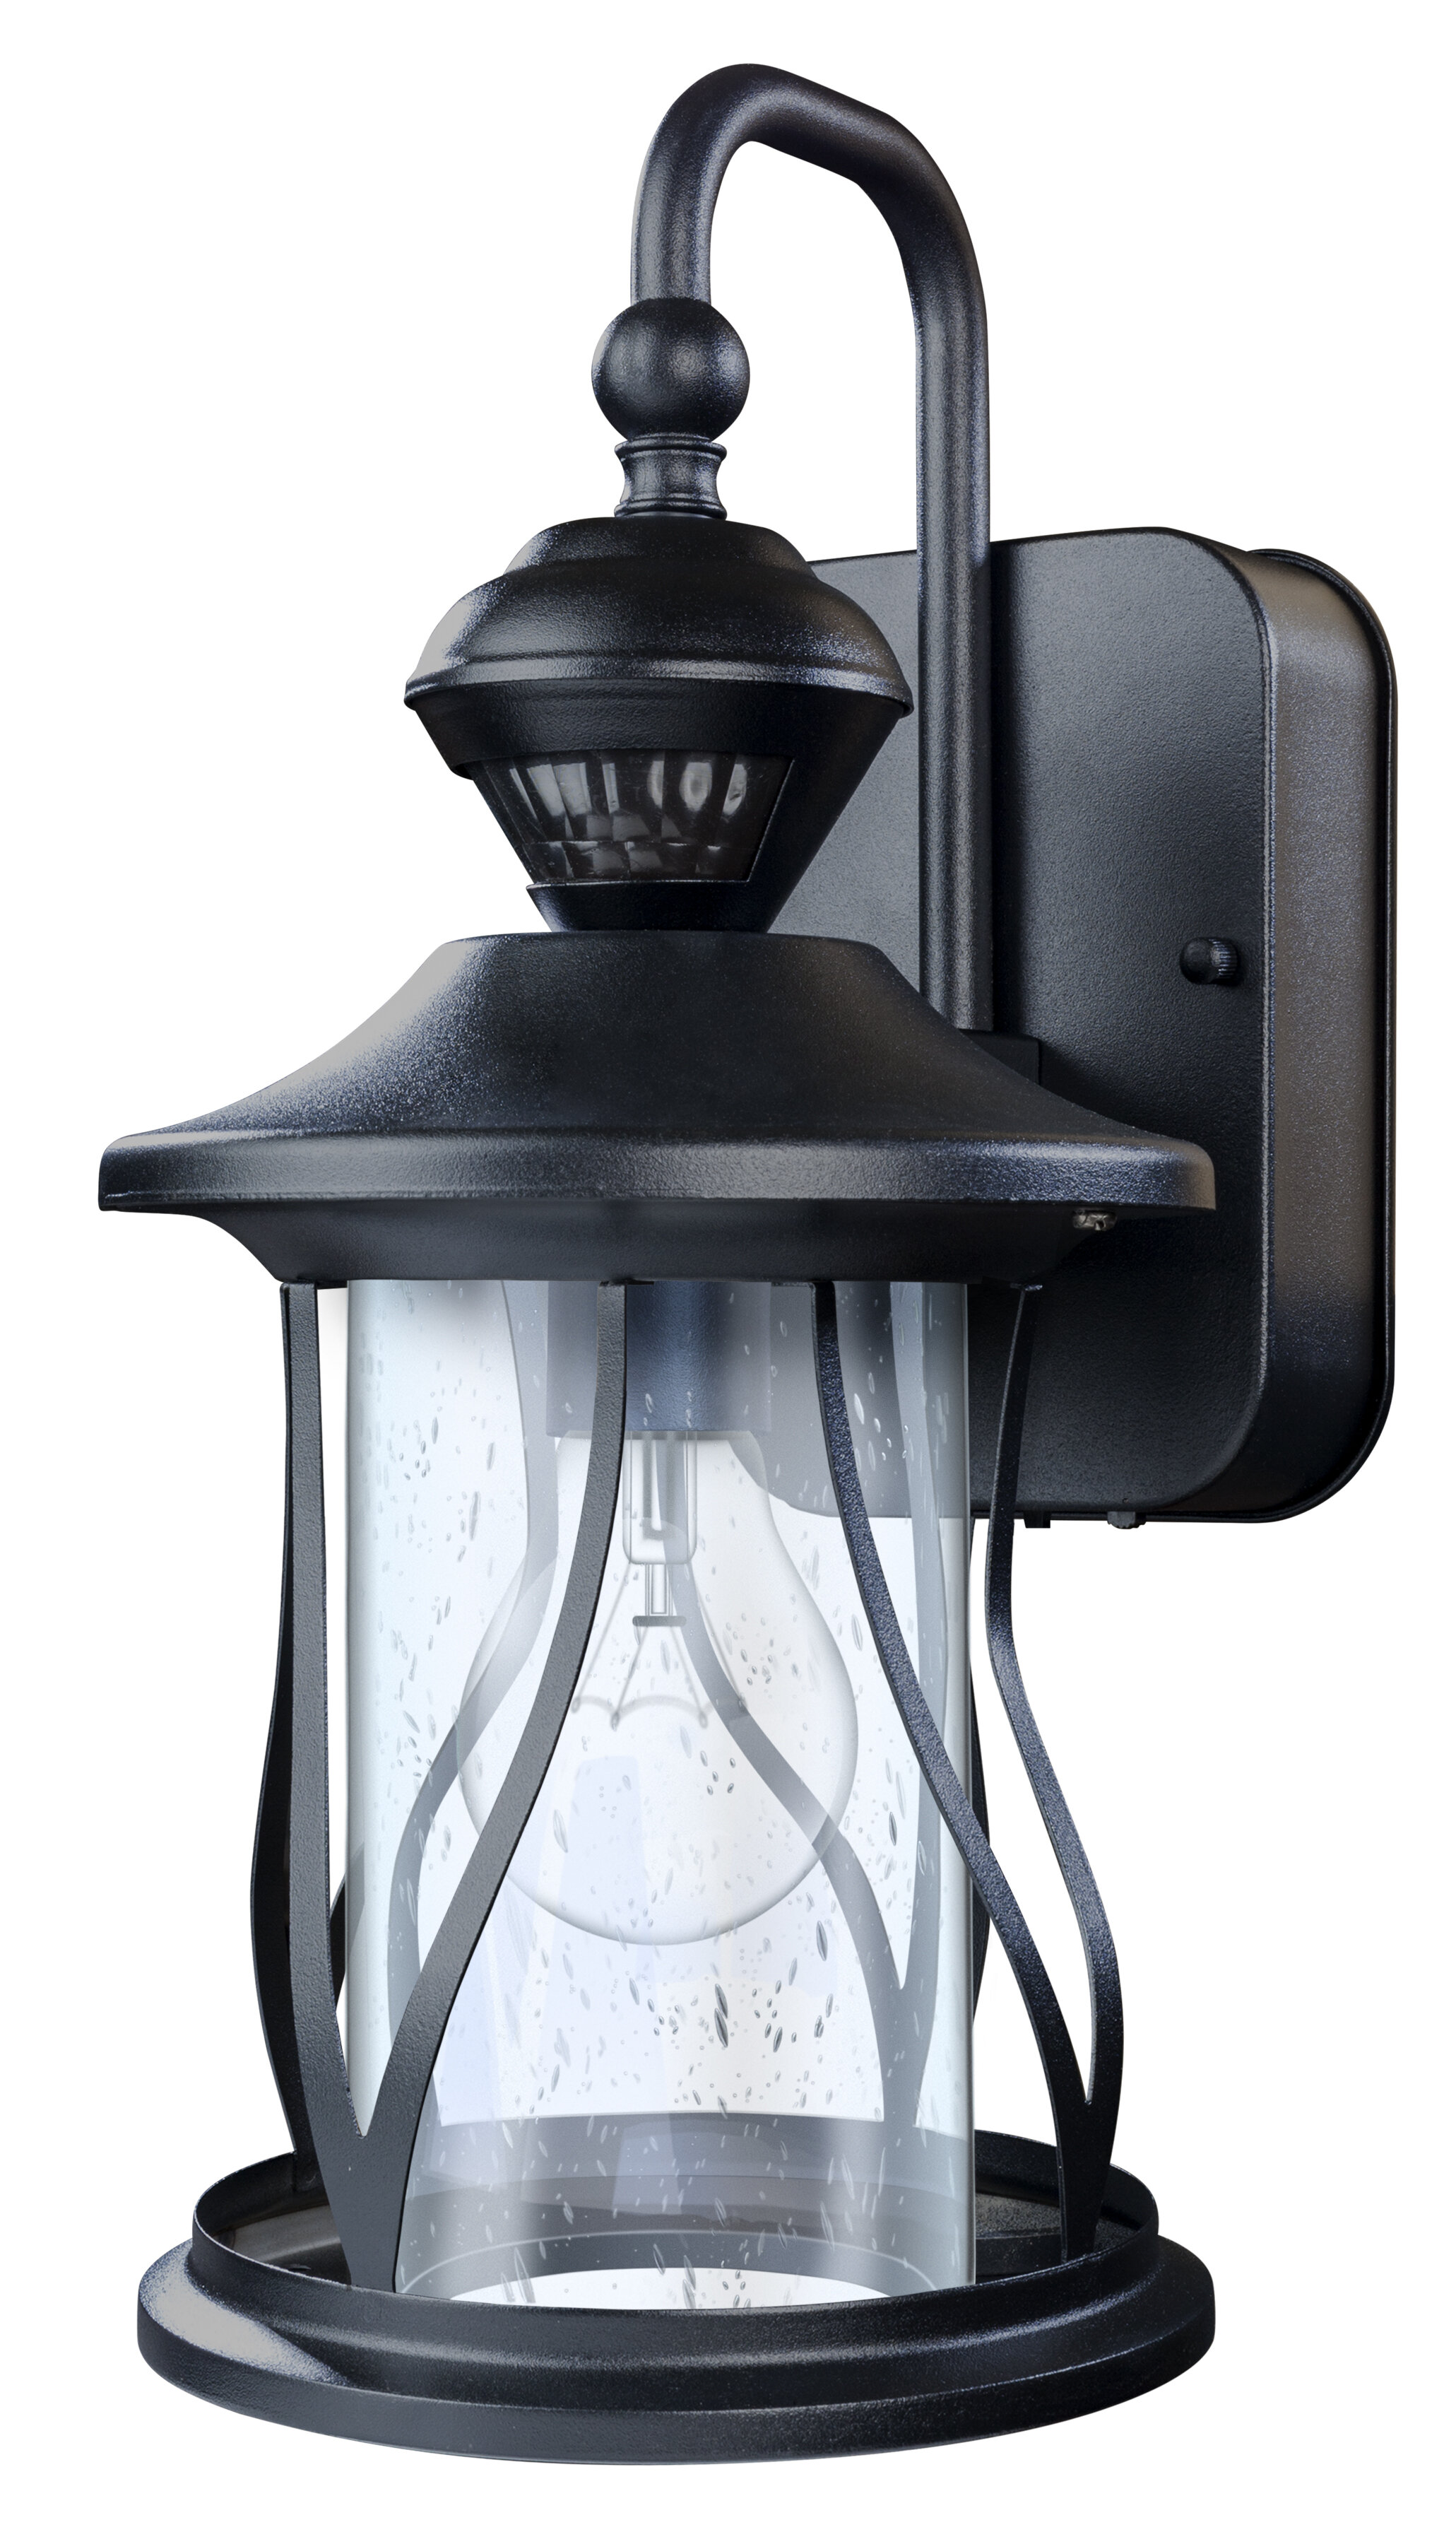 Darby Home Co Justice 150 Motion Activated Decorative 1 Light Outdoor Wall Lantern Reviews Wayfair